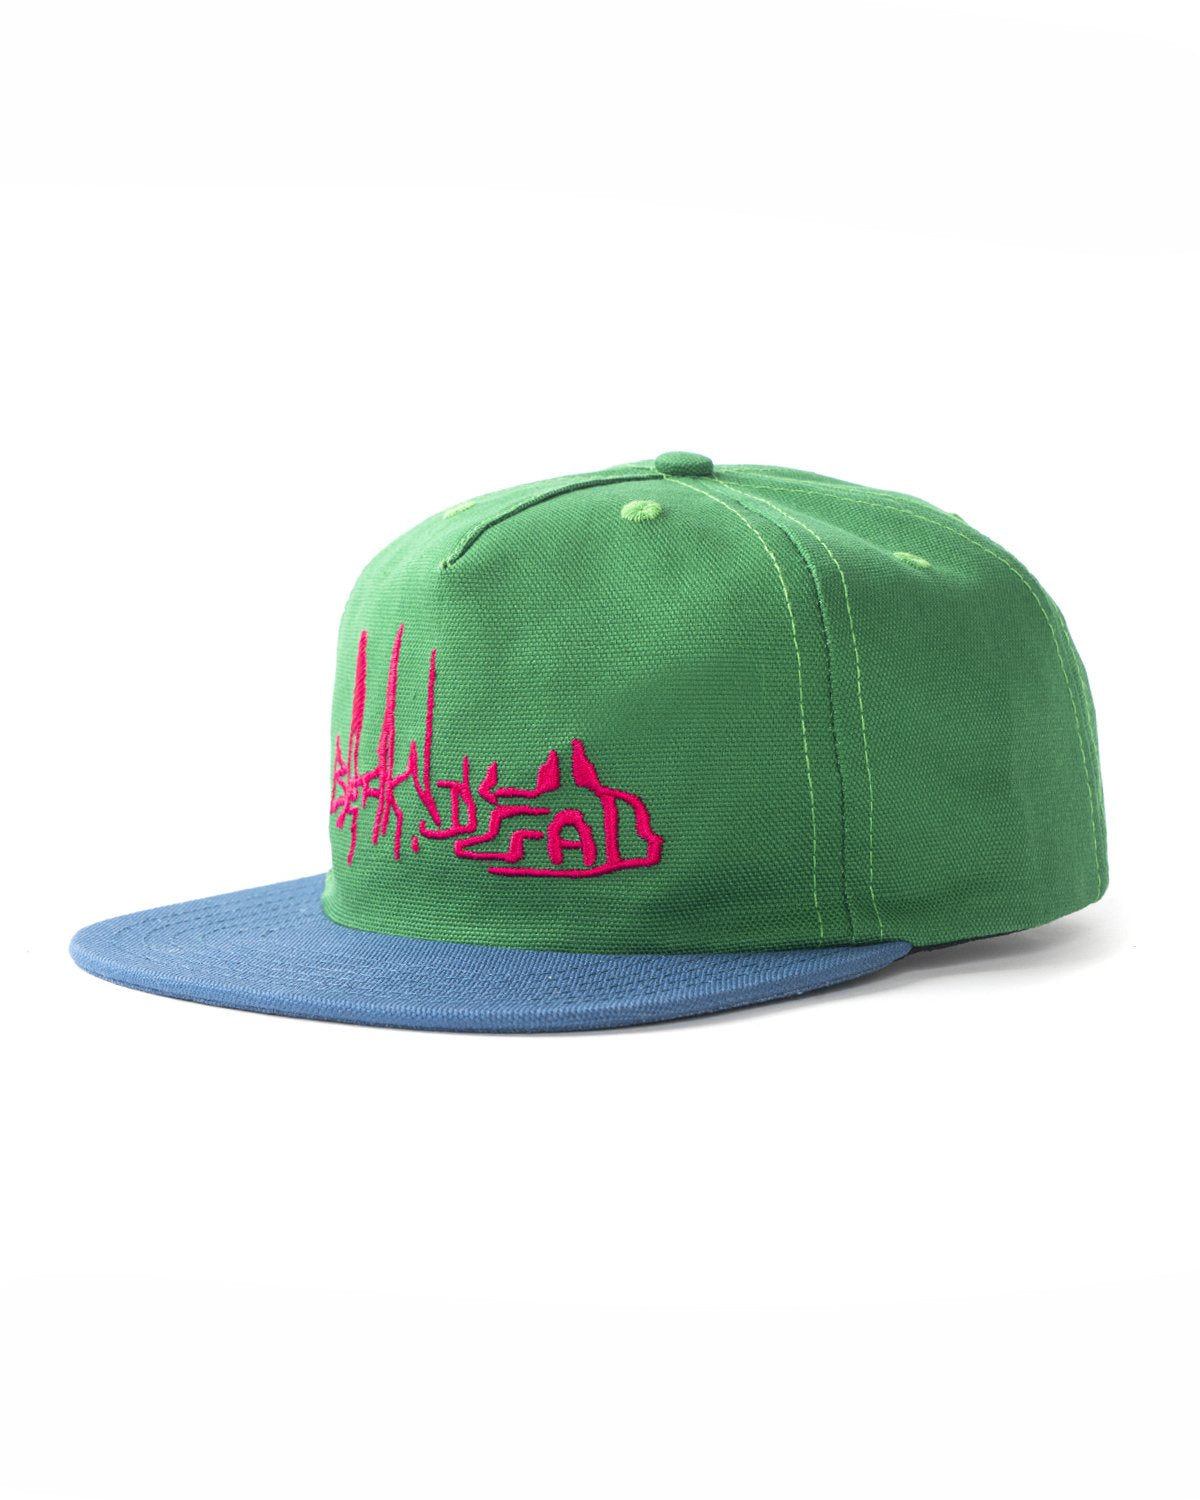 BRAINDEAD HATS GREEN O/S DISTORTED TEXT FIVE PANEL STRAPBACK